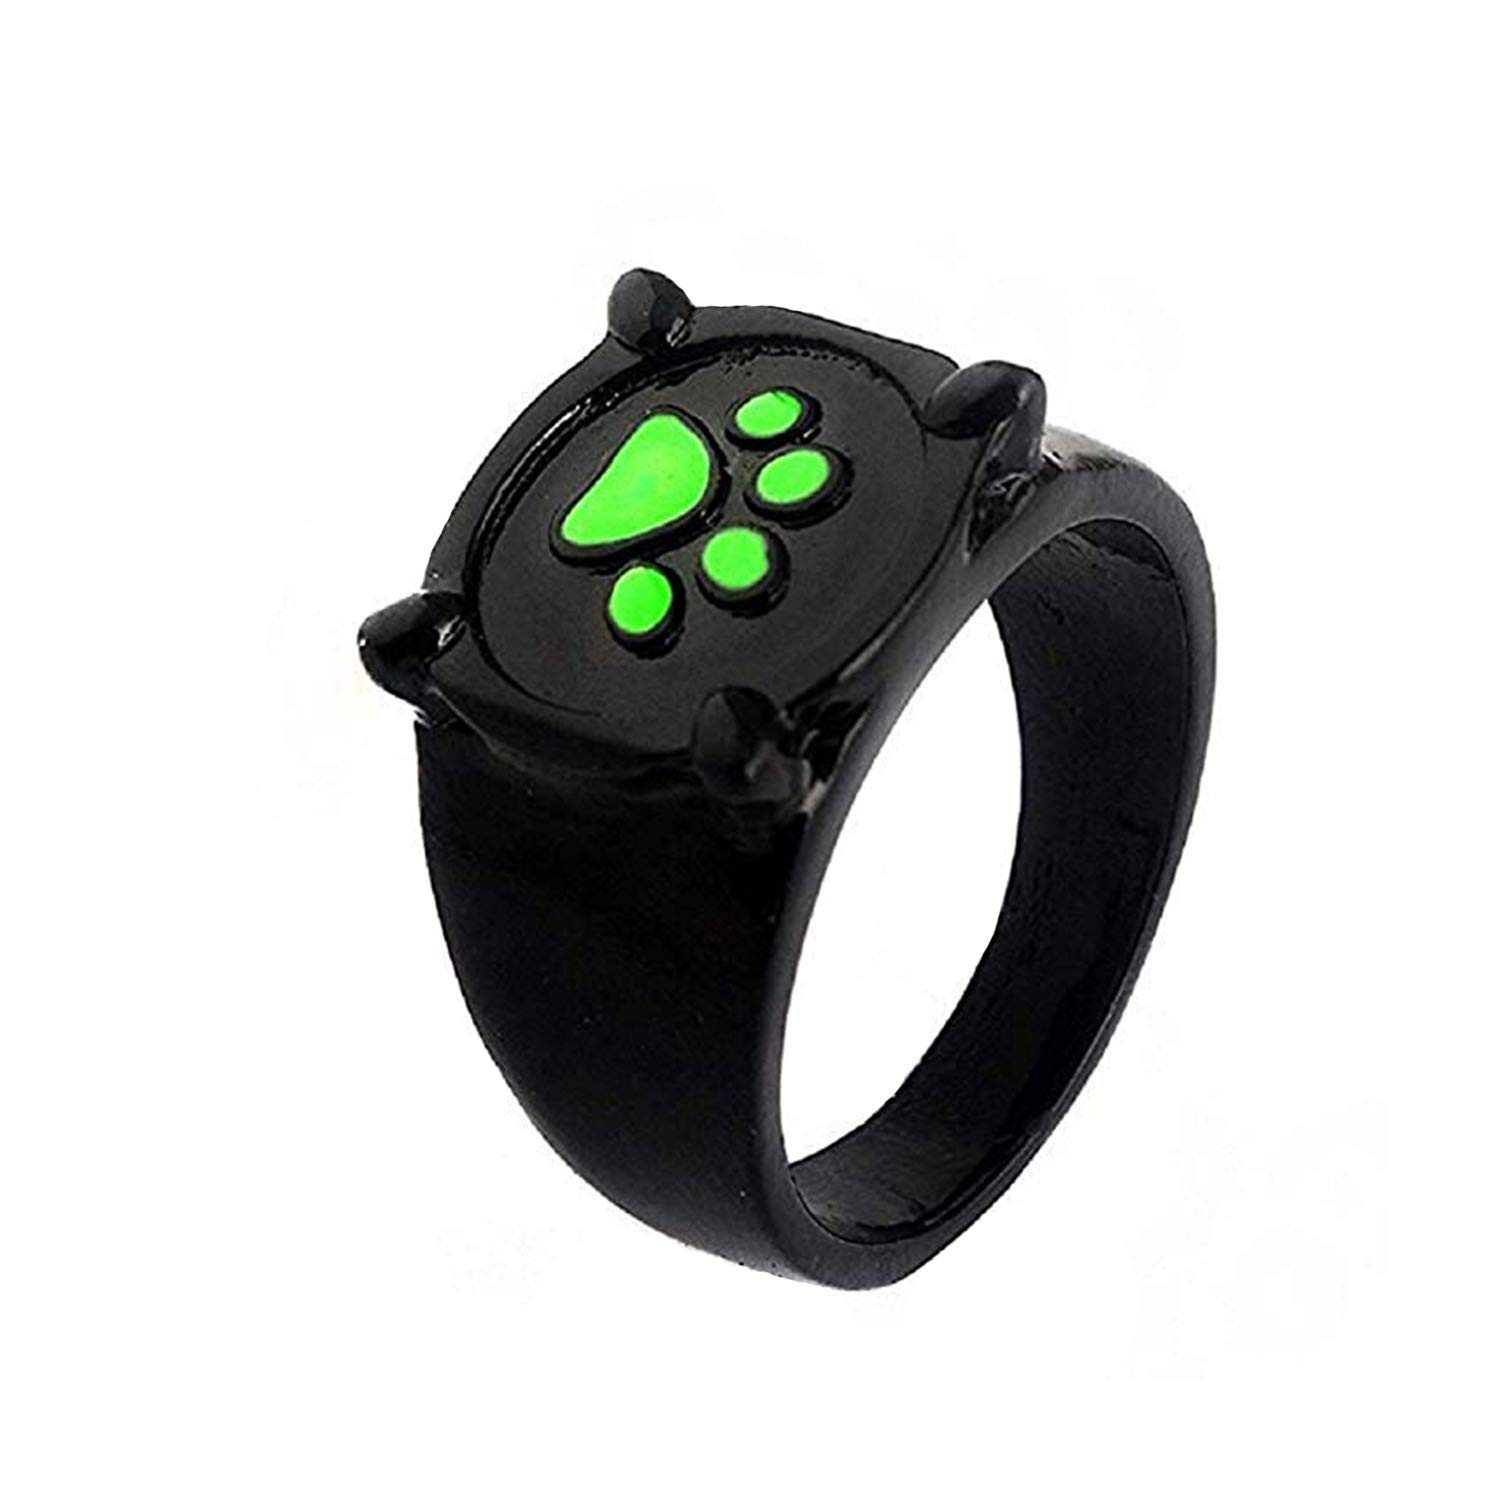 Cat Noir Ring Costume Neclace Halloween Adult-Deluxe Zinc Alloy Black Green Cat Ring Halloween 0.8 Inches Pendant Necklace